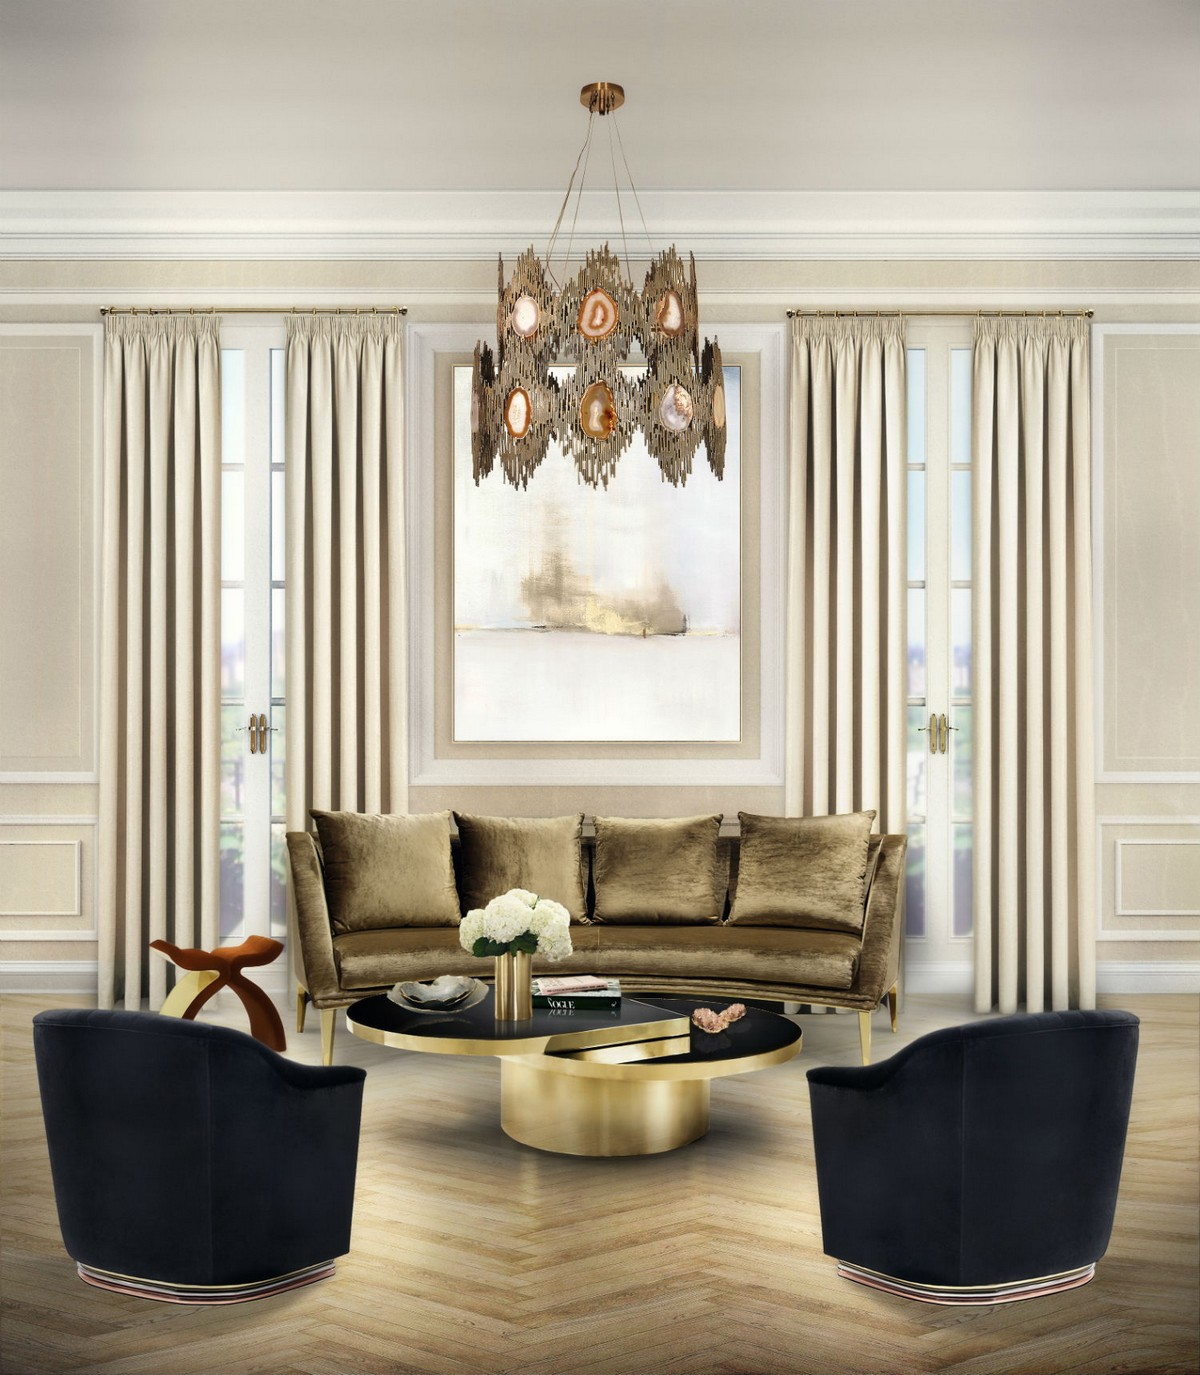 living room, living room ideas, living room decor, center tables, trendy center tables, trendy center tables for 2019, luxury center tables, modern center table trendy center tables Trendy Center Tables for 2019 inspirations ideas salone del mobile best luxury exhibitors modern patio and furniture